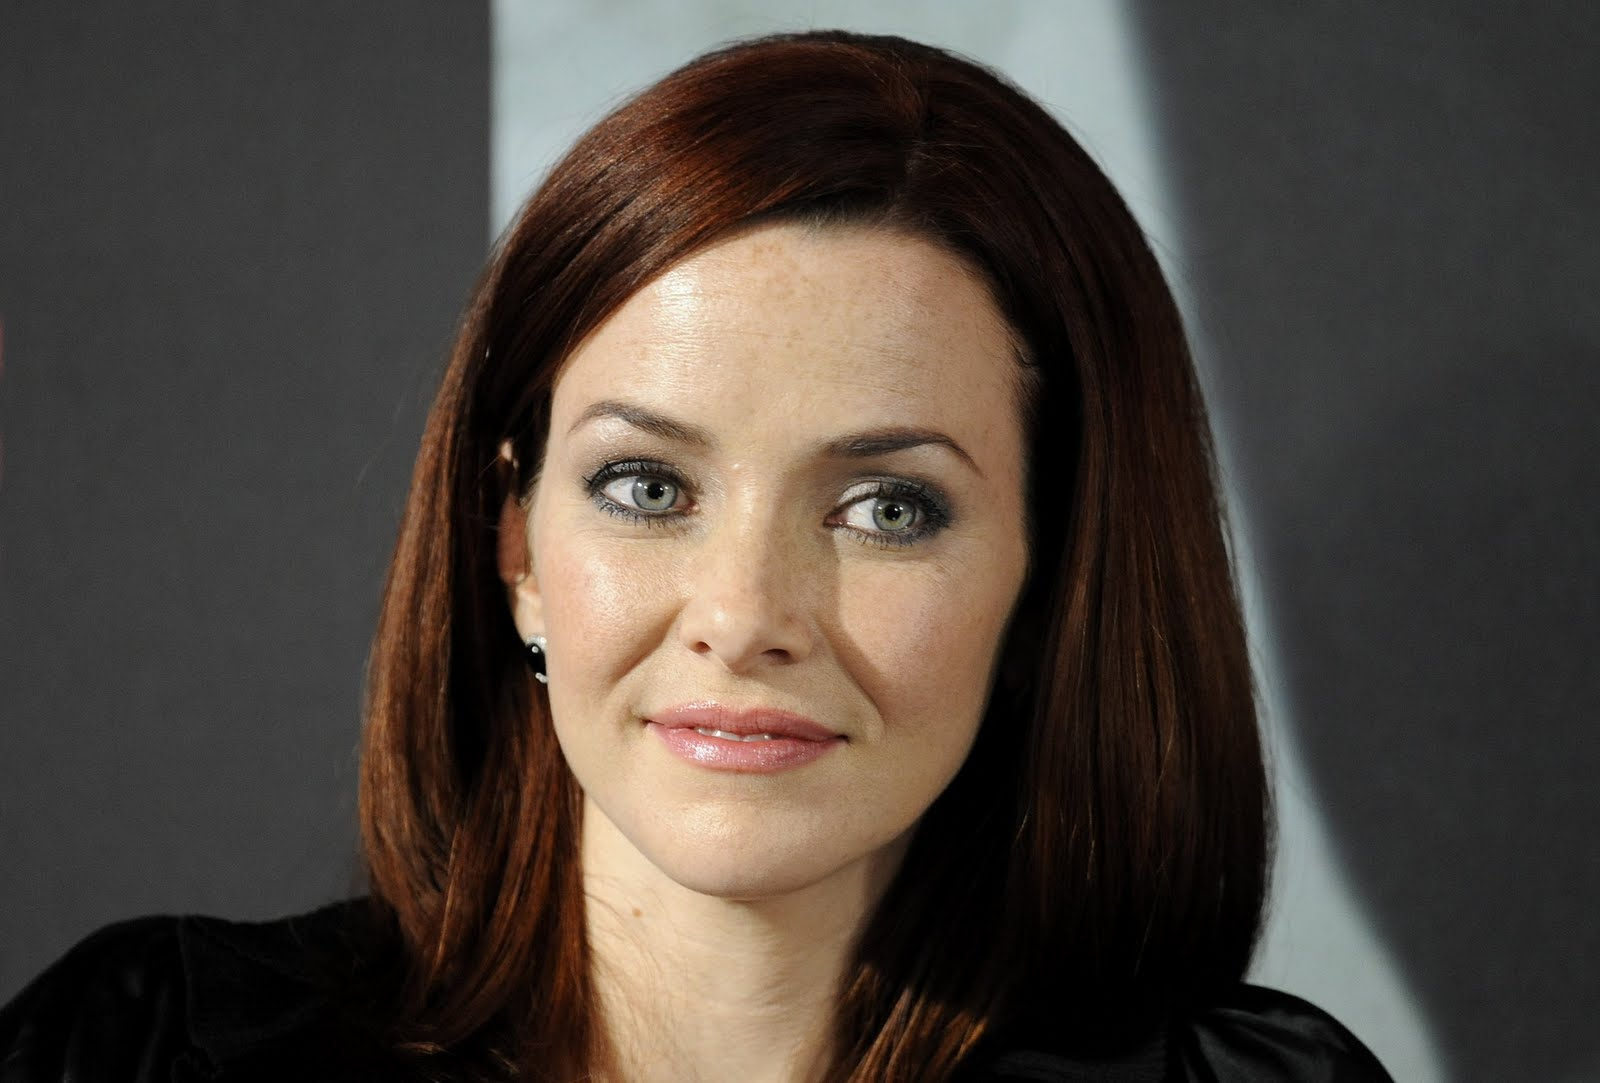 annie wersching - photo #42